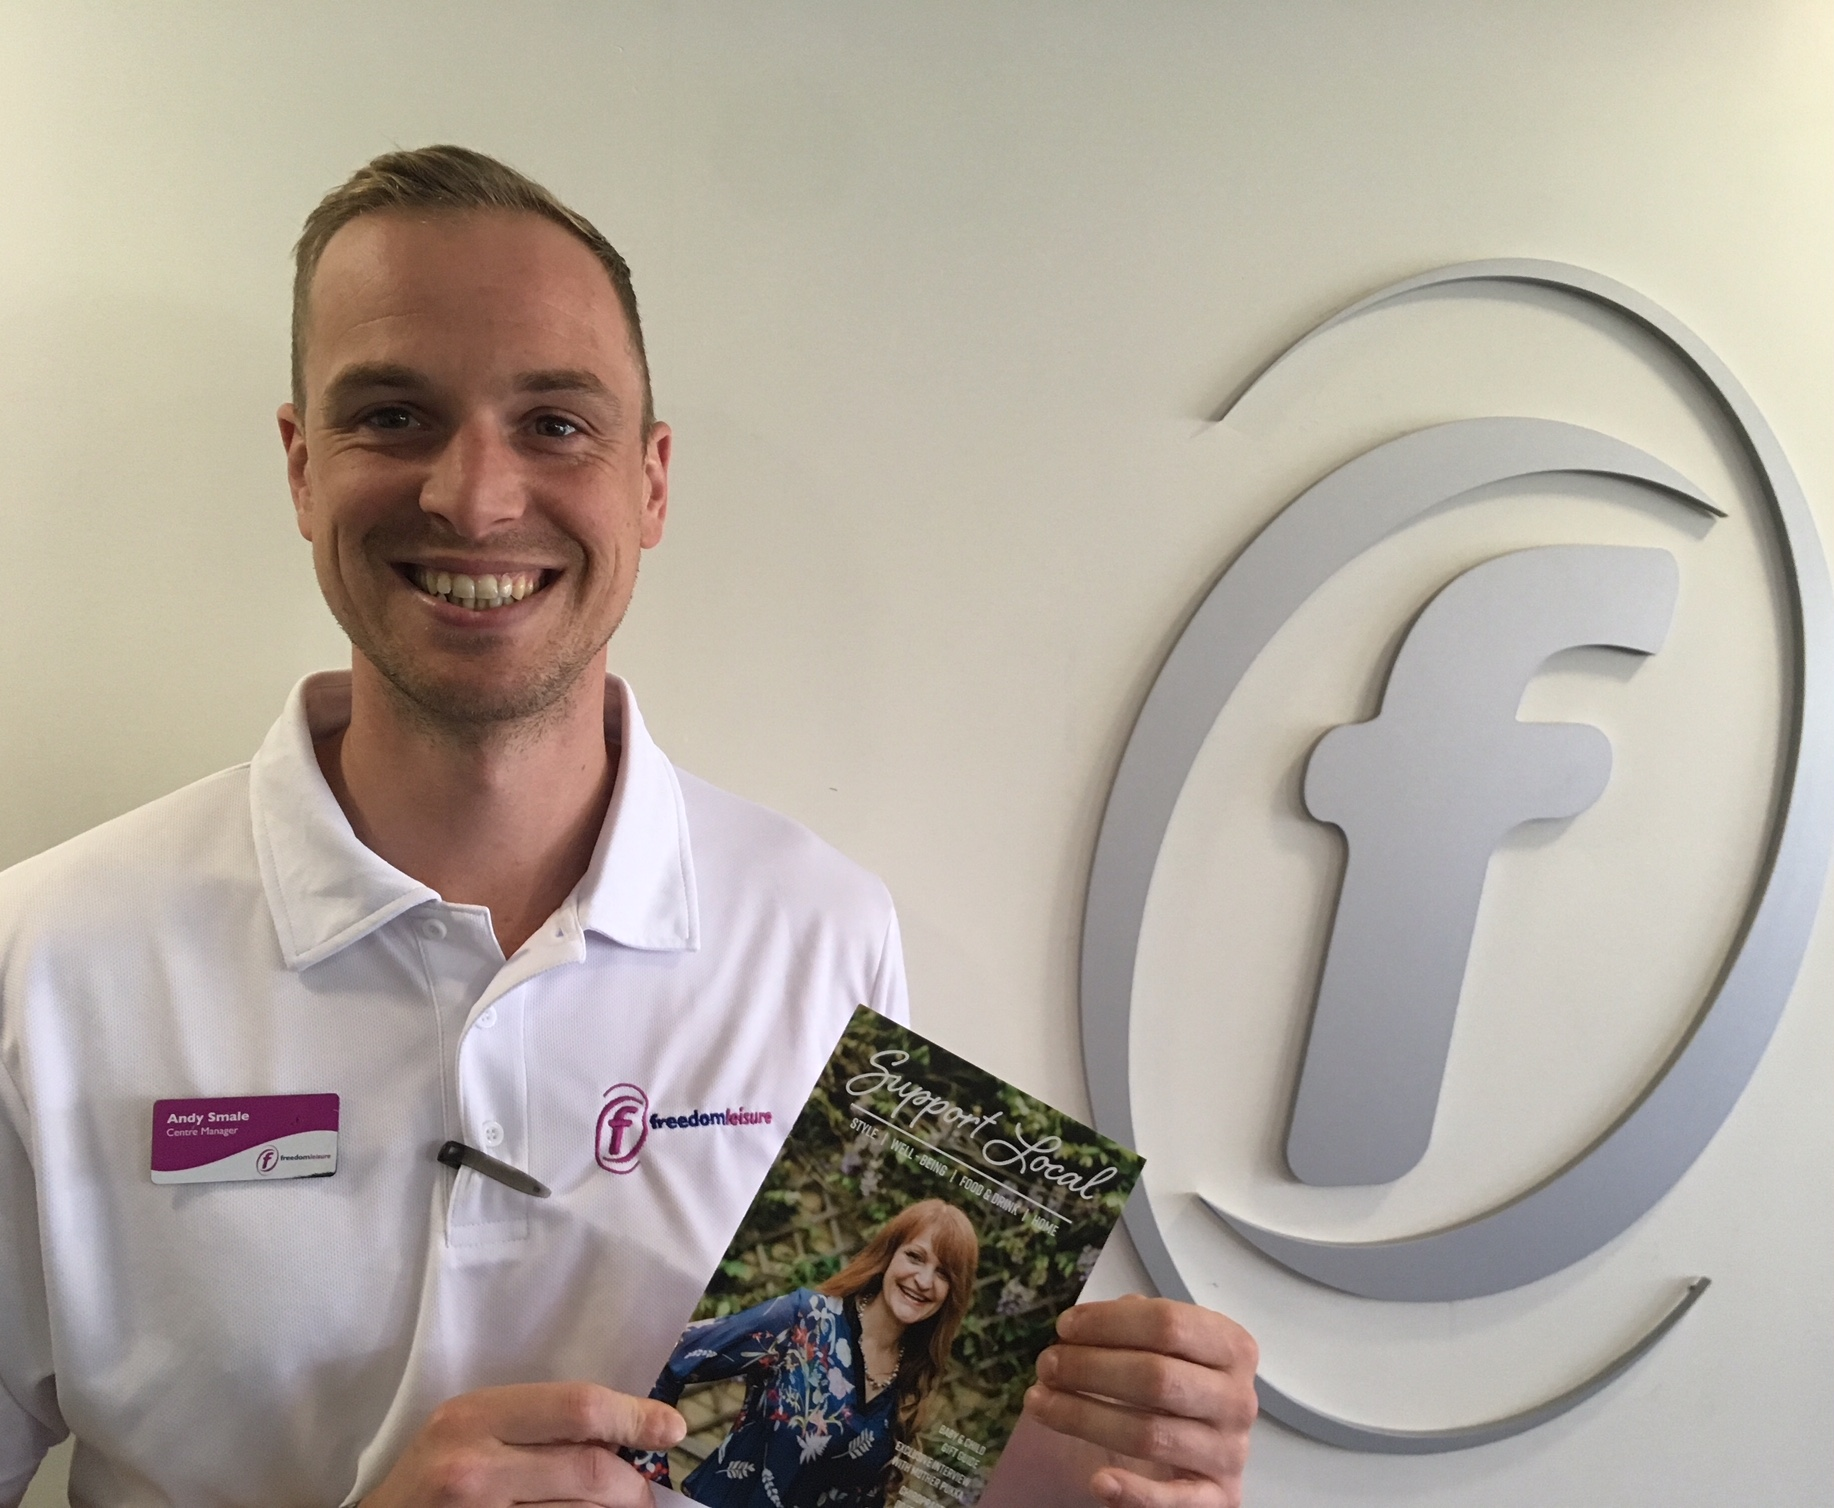 freedom-leisure-crowborough-support-local-magazine-stockist.jpg